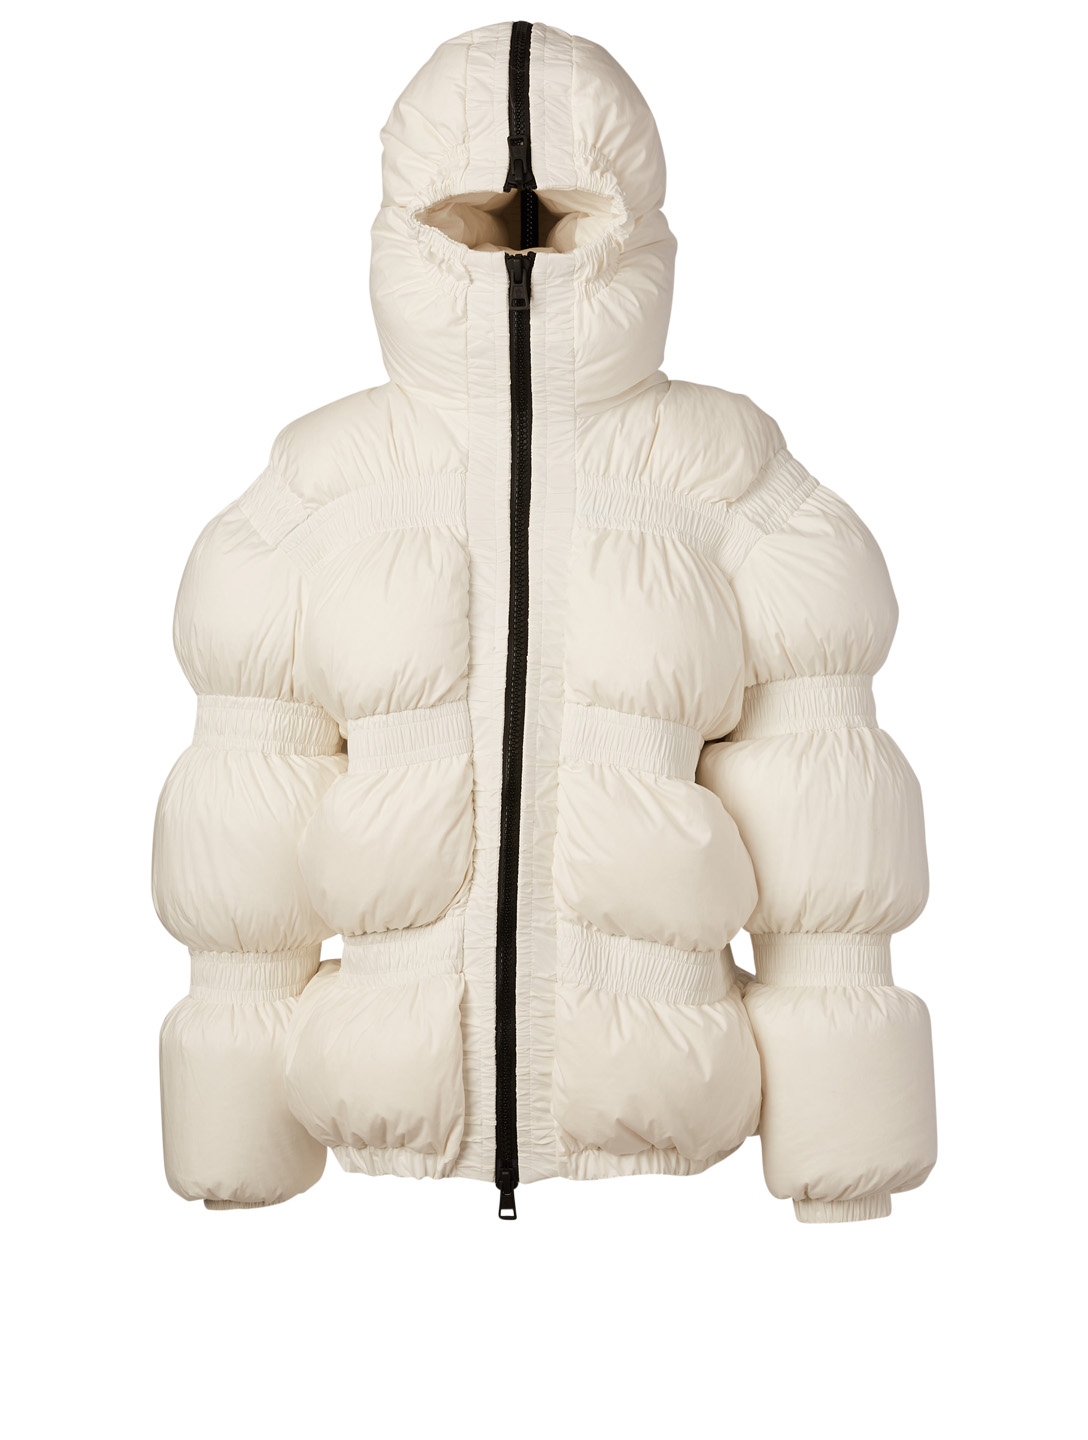 MONCLER GENIUS 5 Moncler x Craig Green Glenard Down Puffer Jacket Men's White